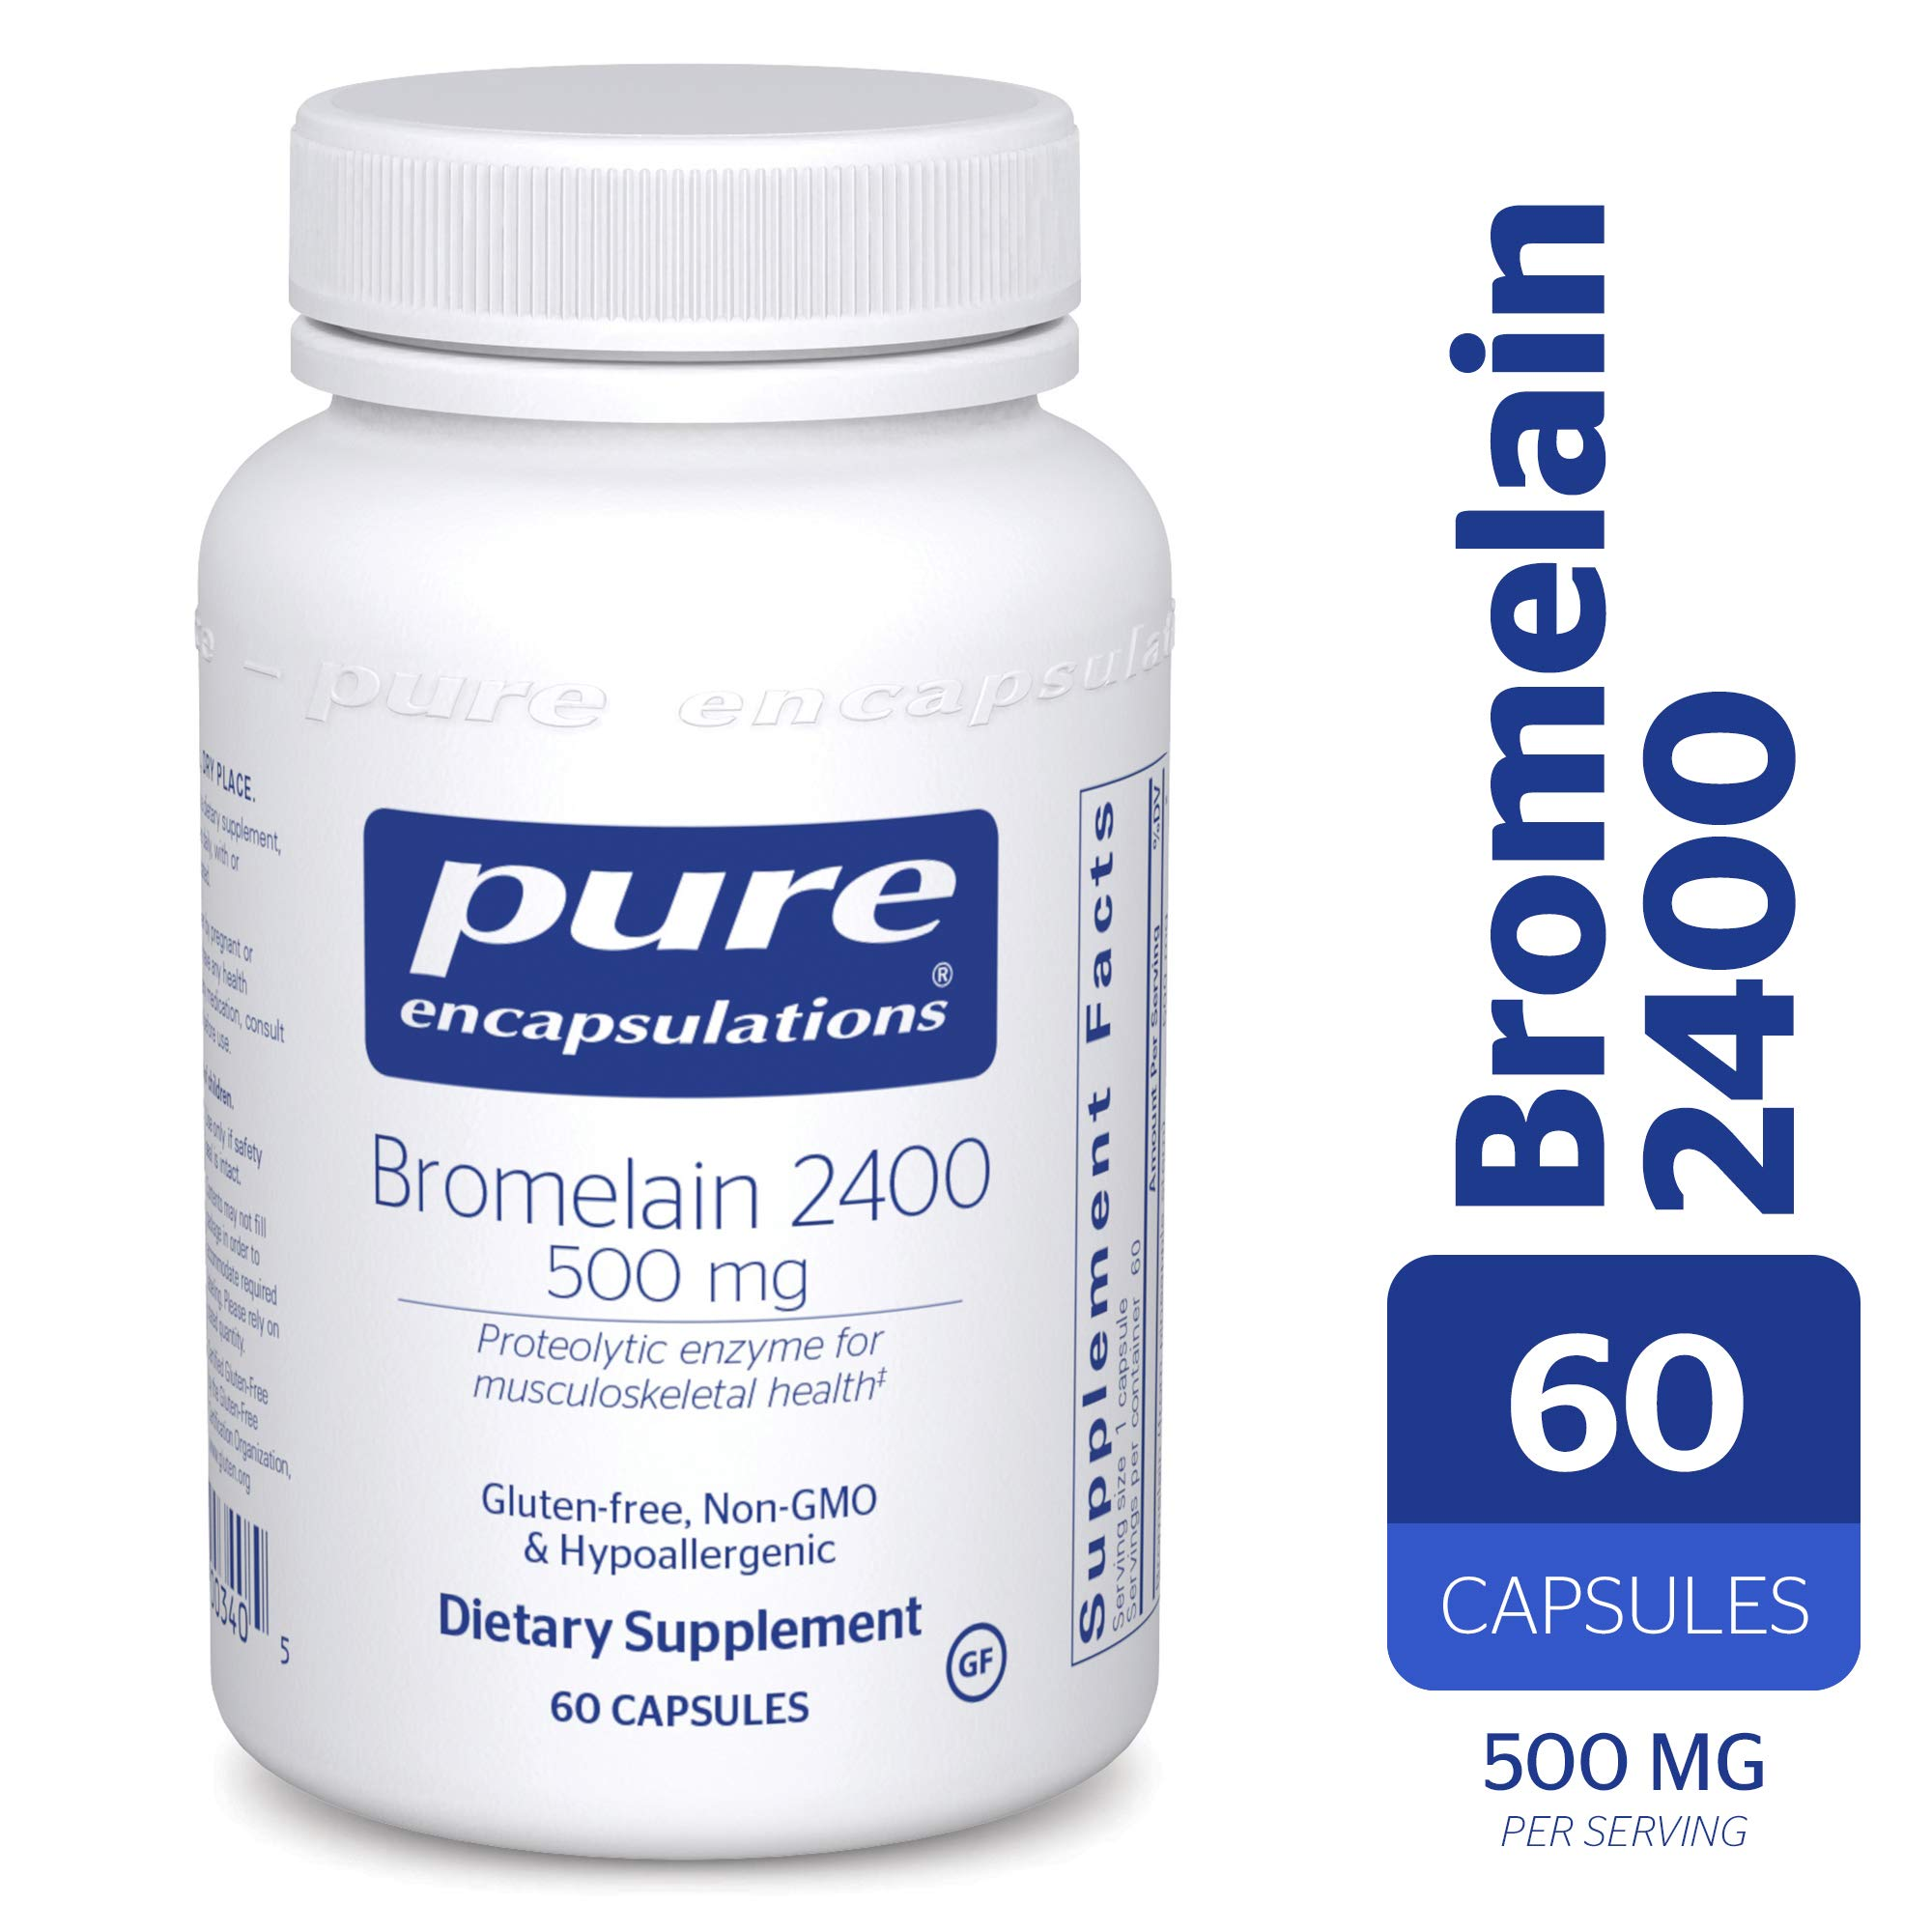 Pure Encapsulations - Bromelain 2400-500 mg - Hypoallergenic Dietary Supplement for Digestive Support* - 60 Capsules